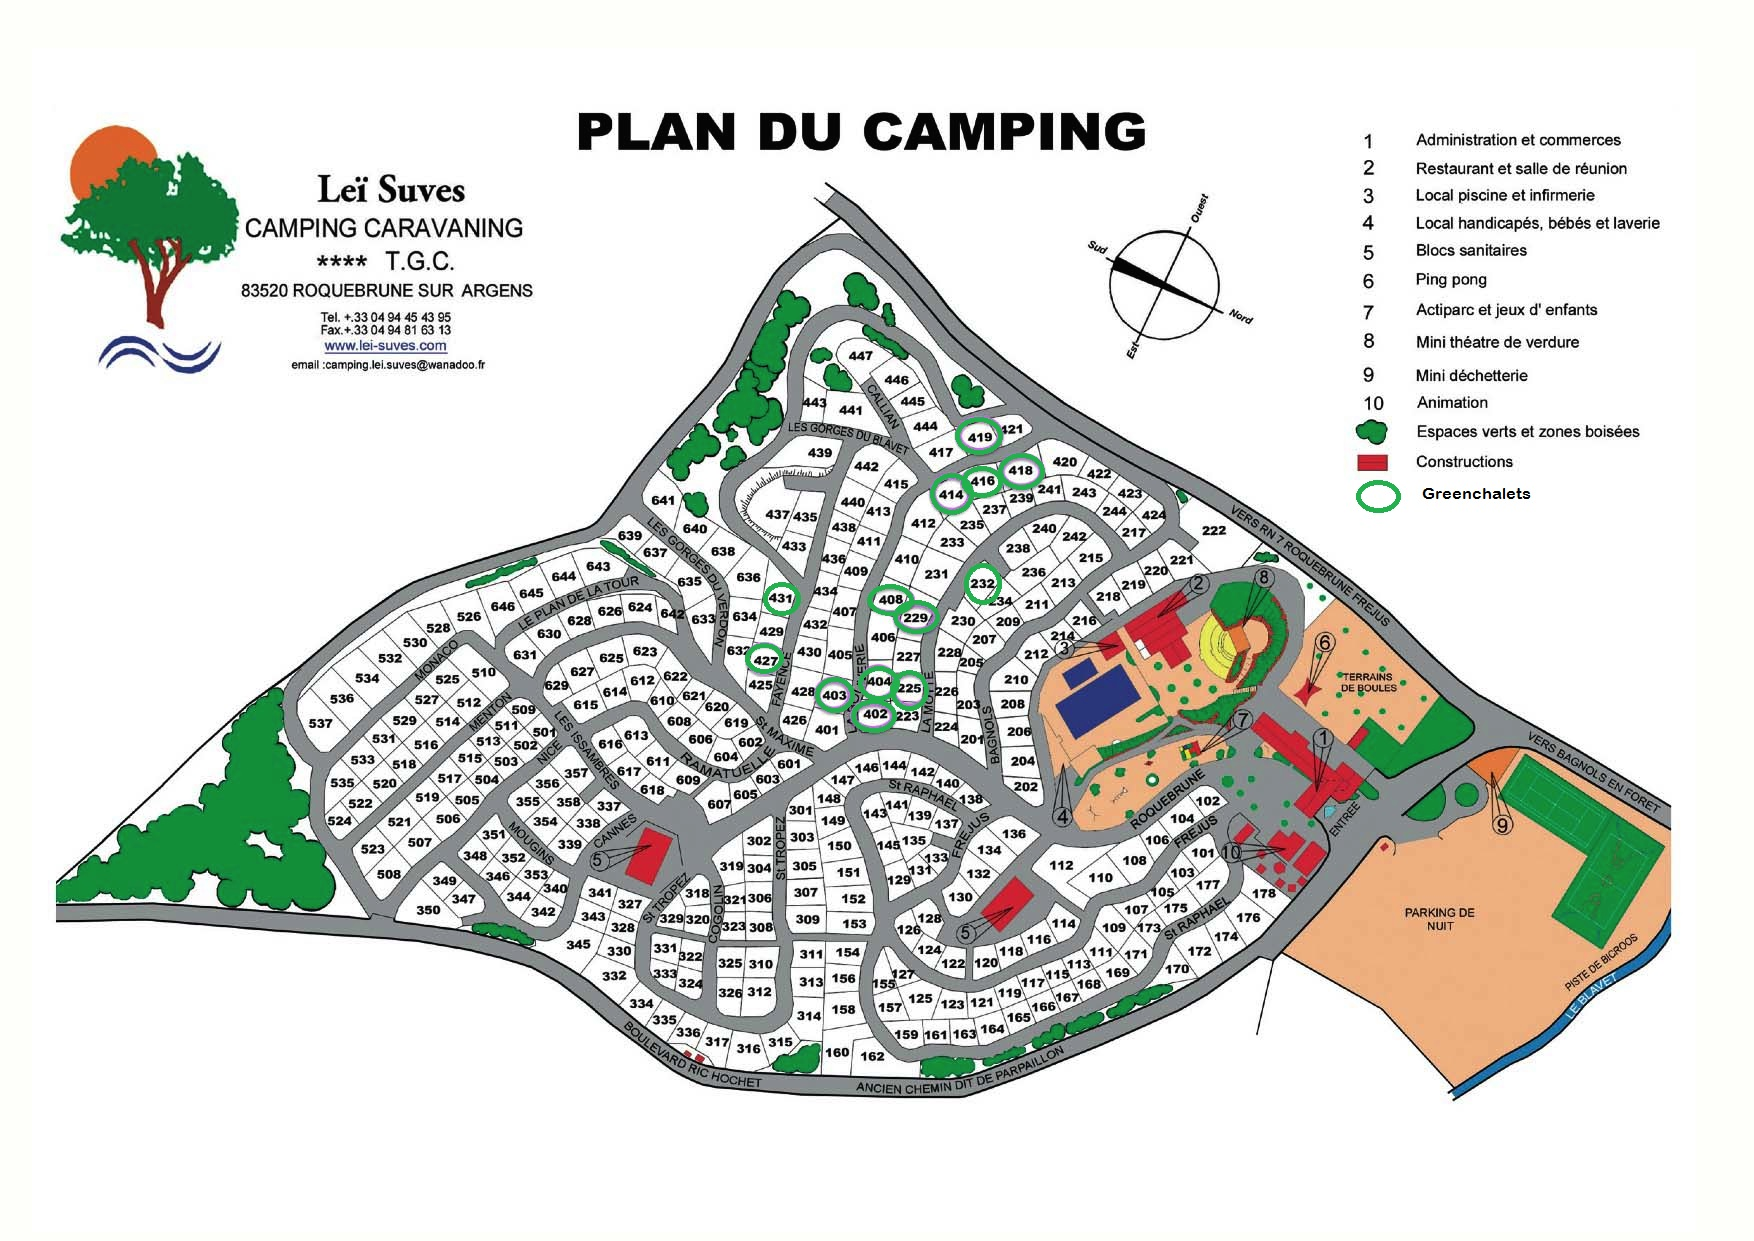 Greenchalets plattegrond camping Lei Suves Roquebrune